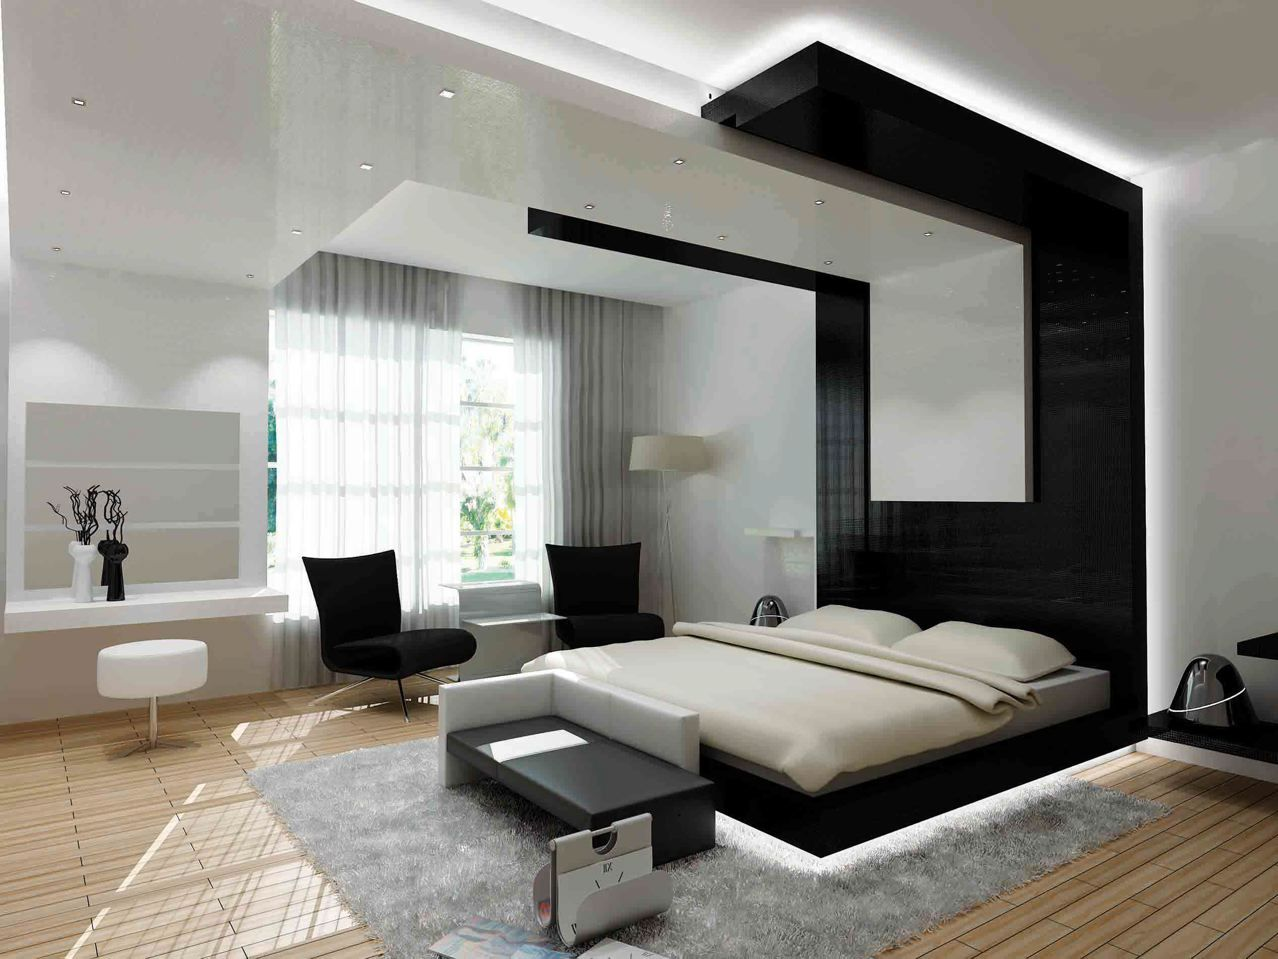 The Elegance of White and Black Bedroom Ideas that You can Apply to Your Bedroom